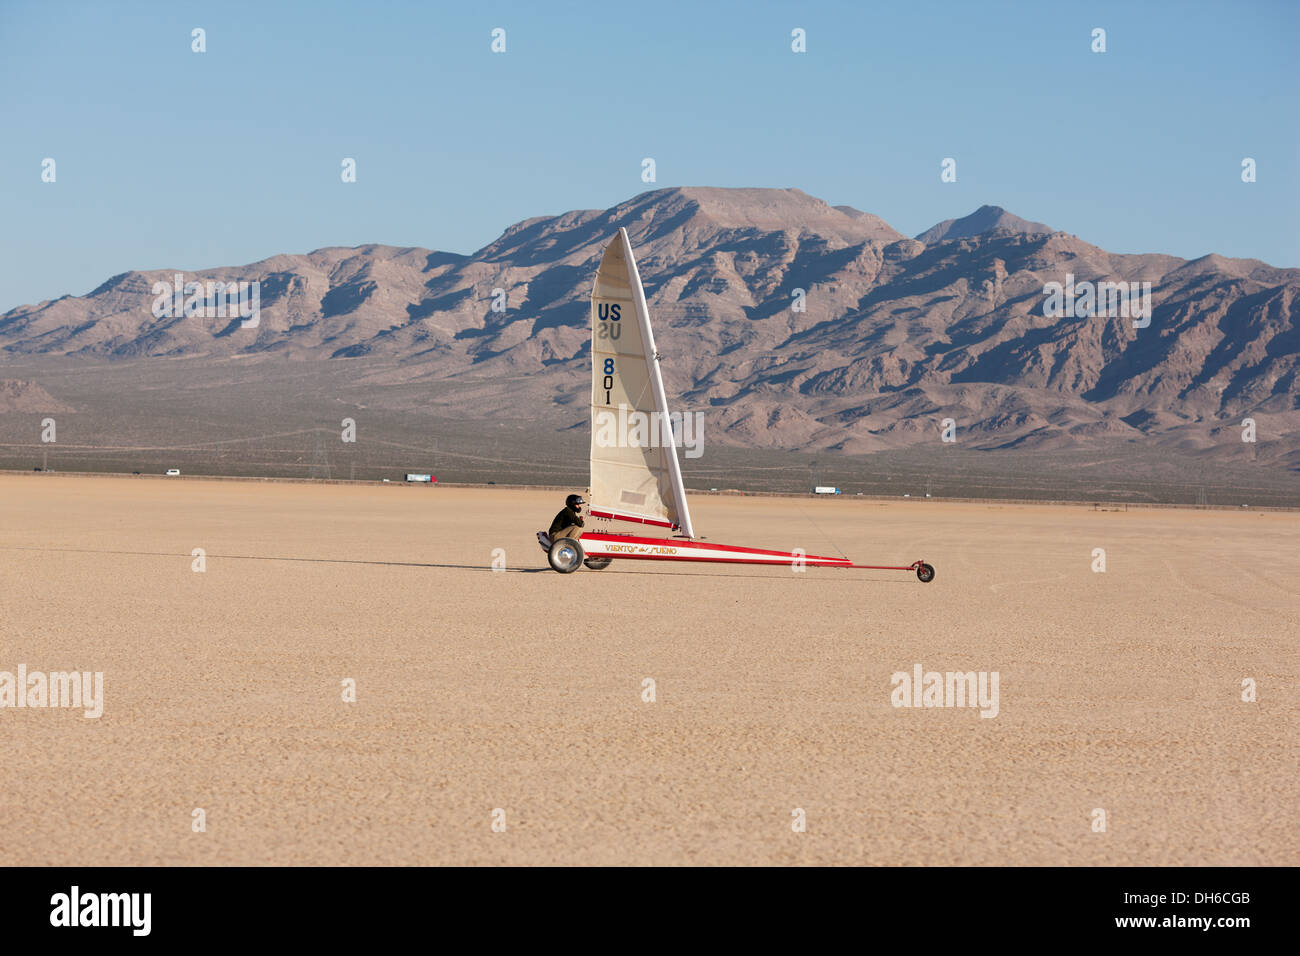 LANDSAILING ON A DRY LAKE Ivanpah dry lake near Primm, at the California / Nevada border, USA. Stock Photo